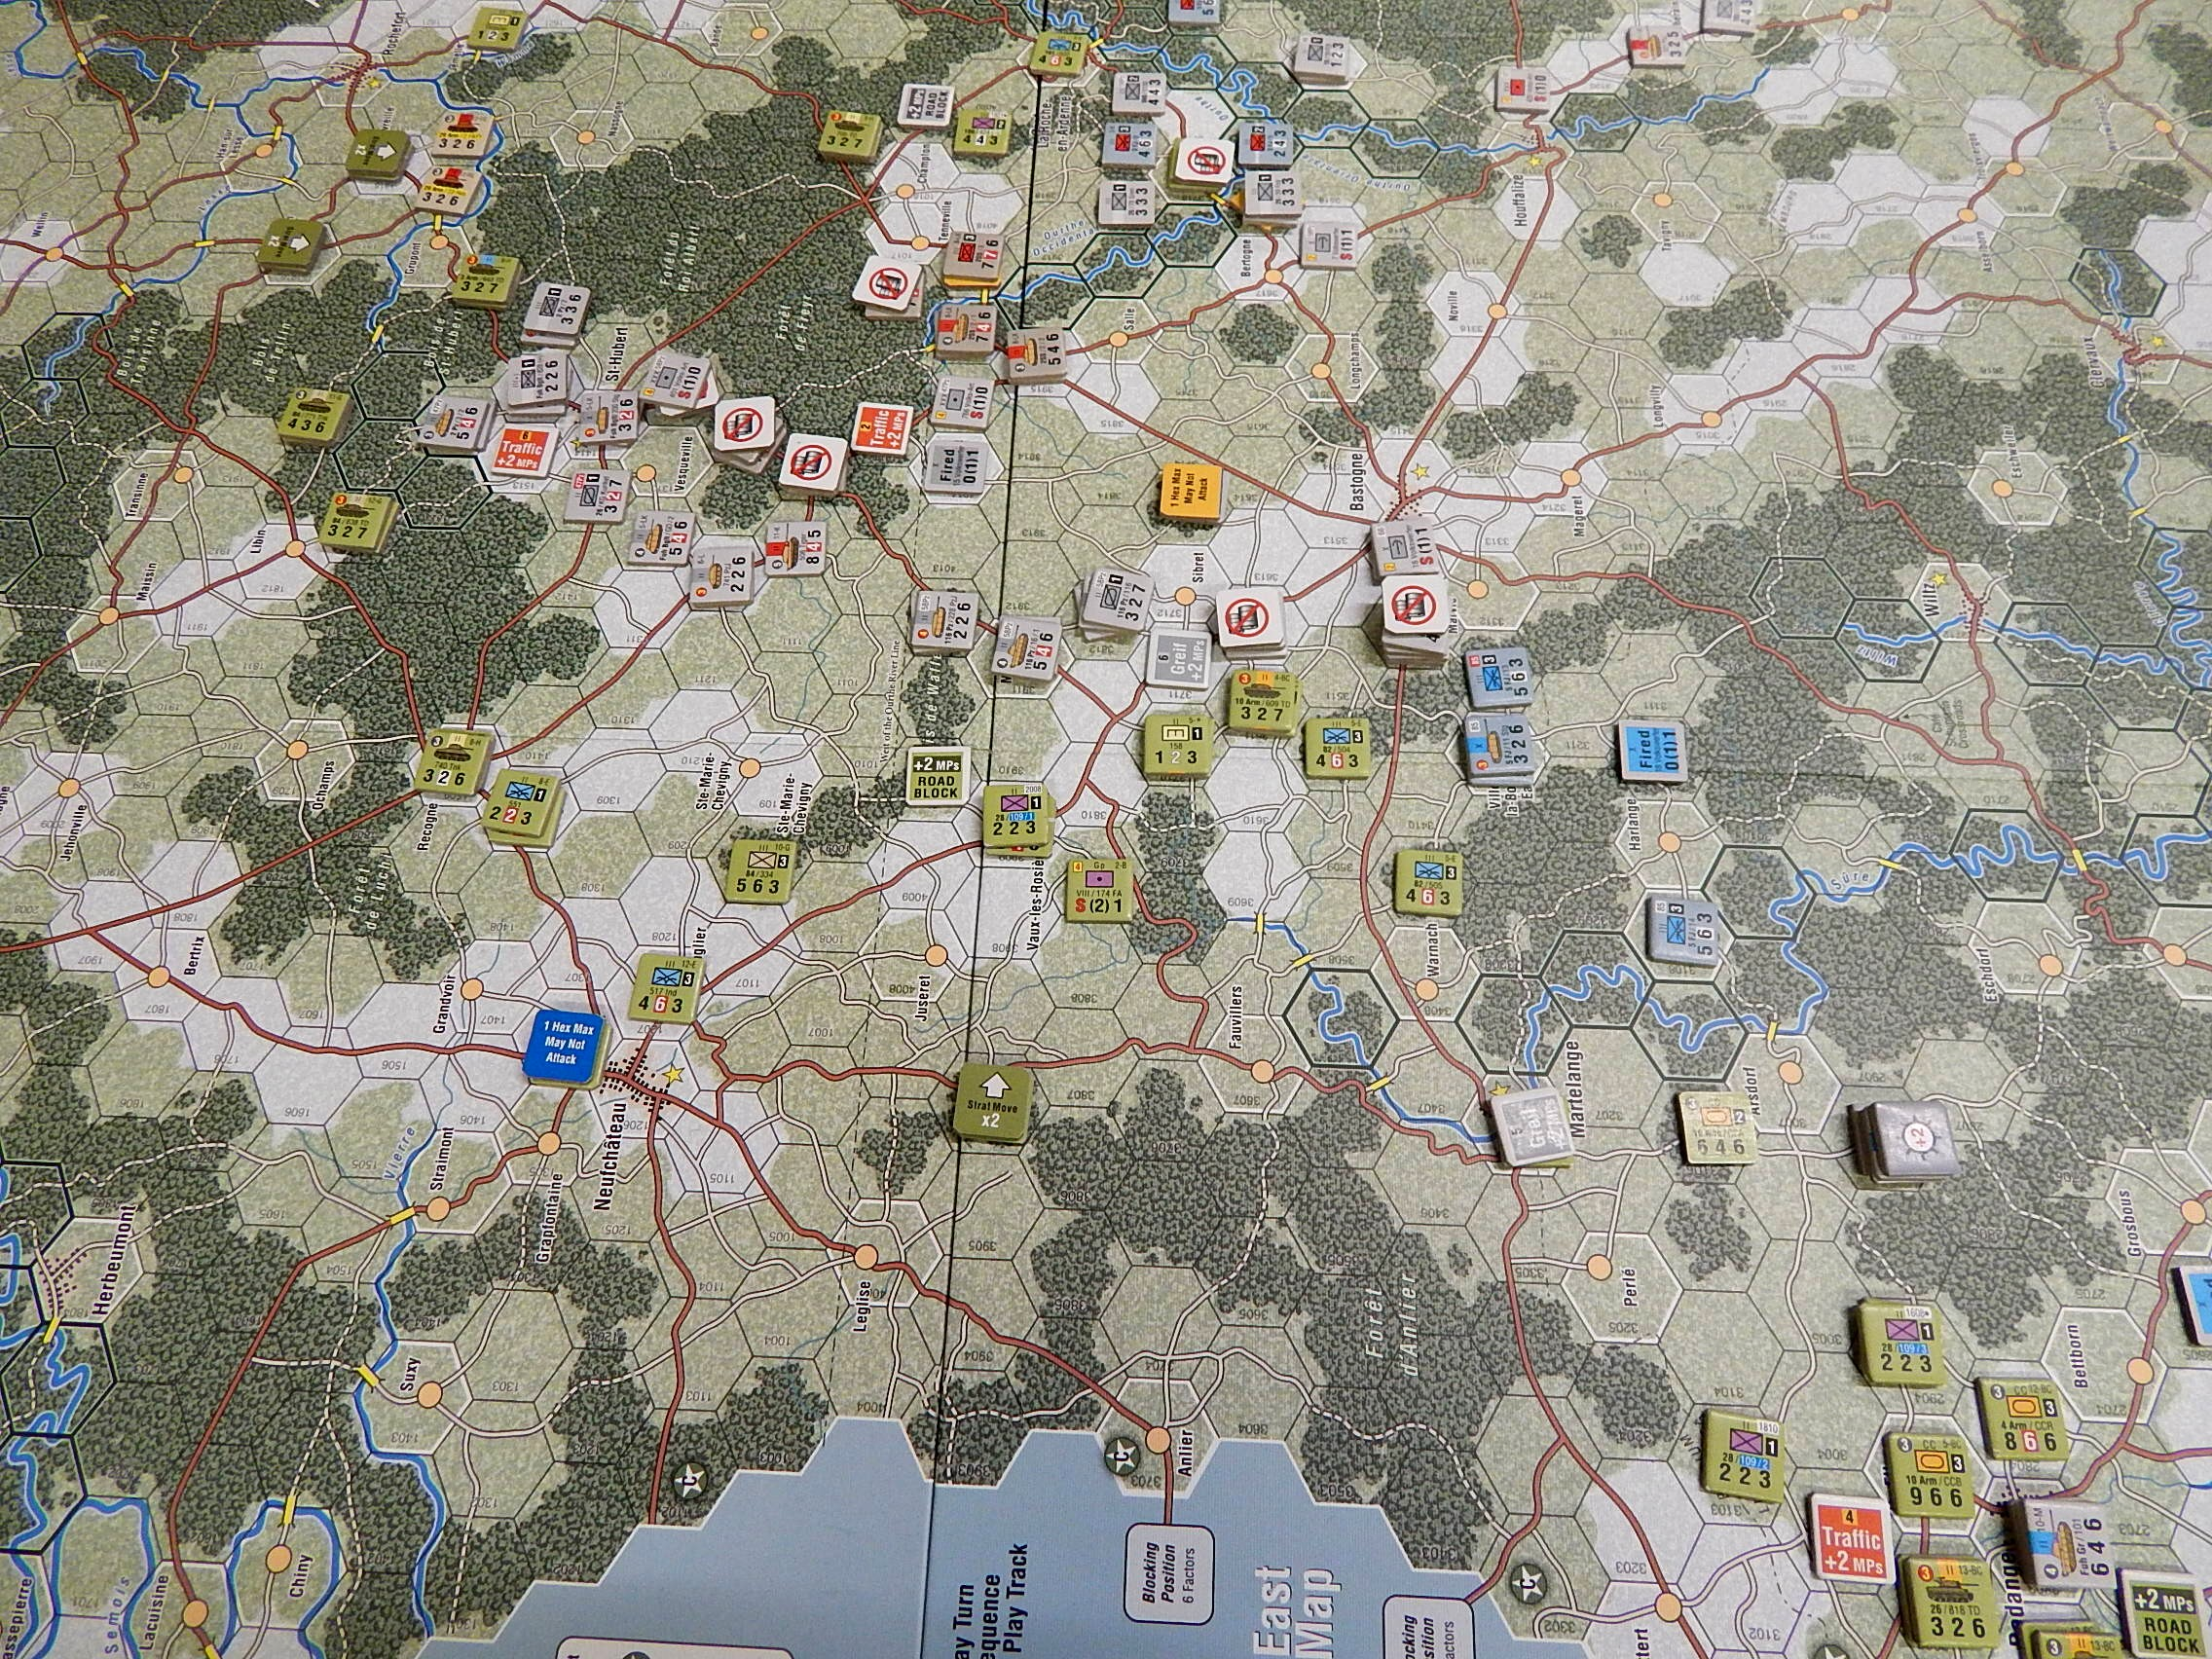 https://i.ibb.co/tQjRTTN/Ardennes-44-End-of-Play-B.jpg